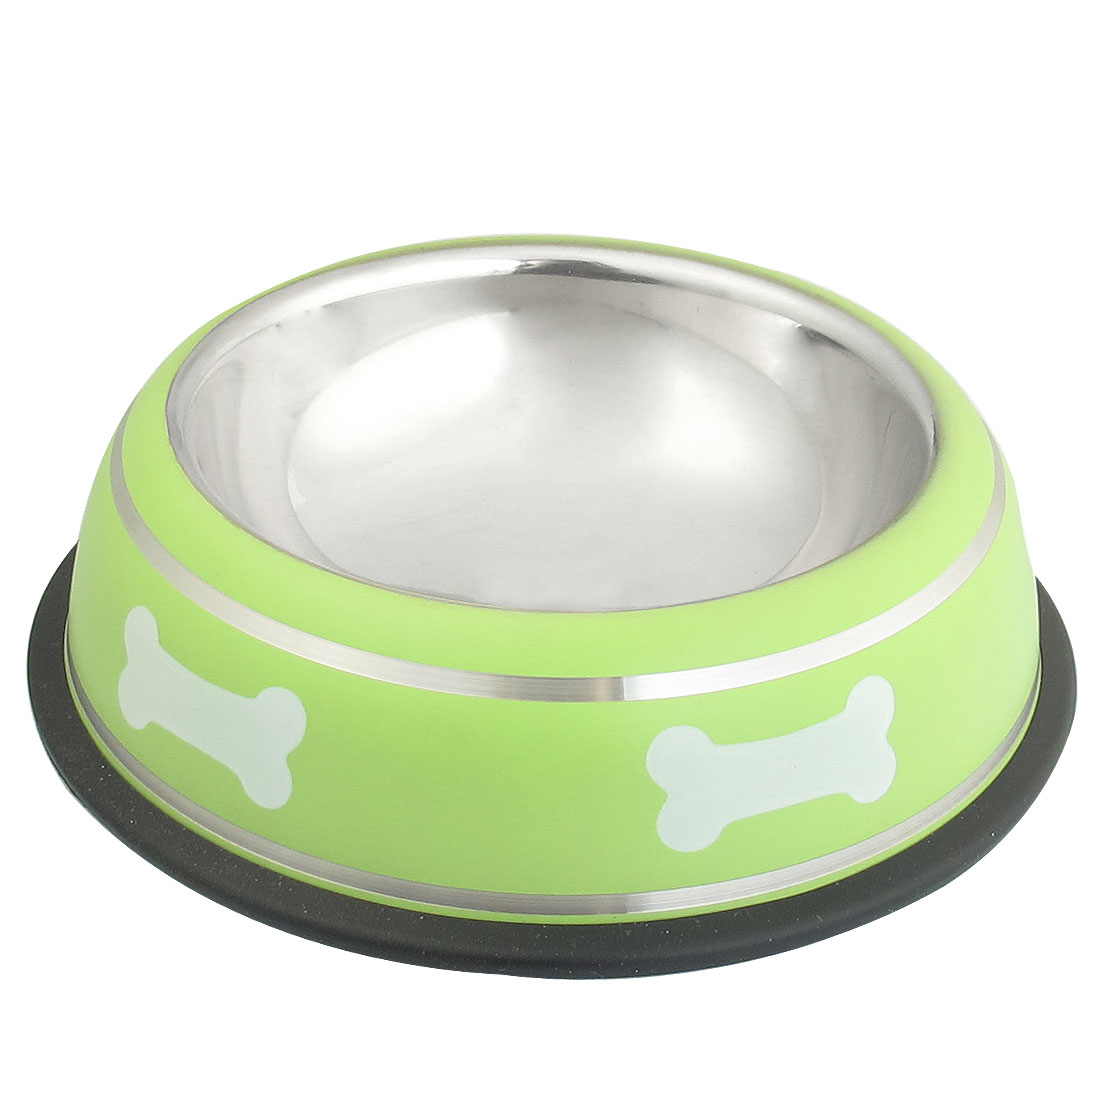 Stainless Steel Bone Print Nonslip Base Cat Pet Dog Water Food Bowl Green